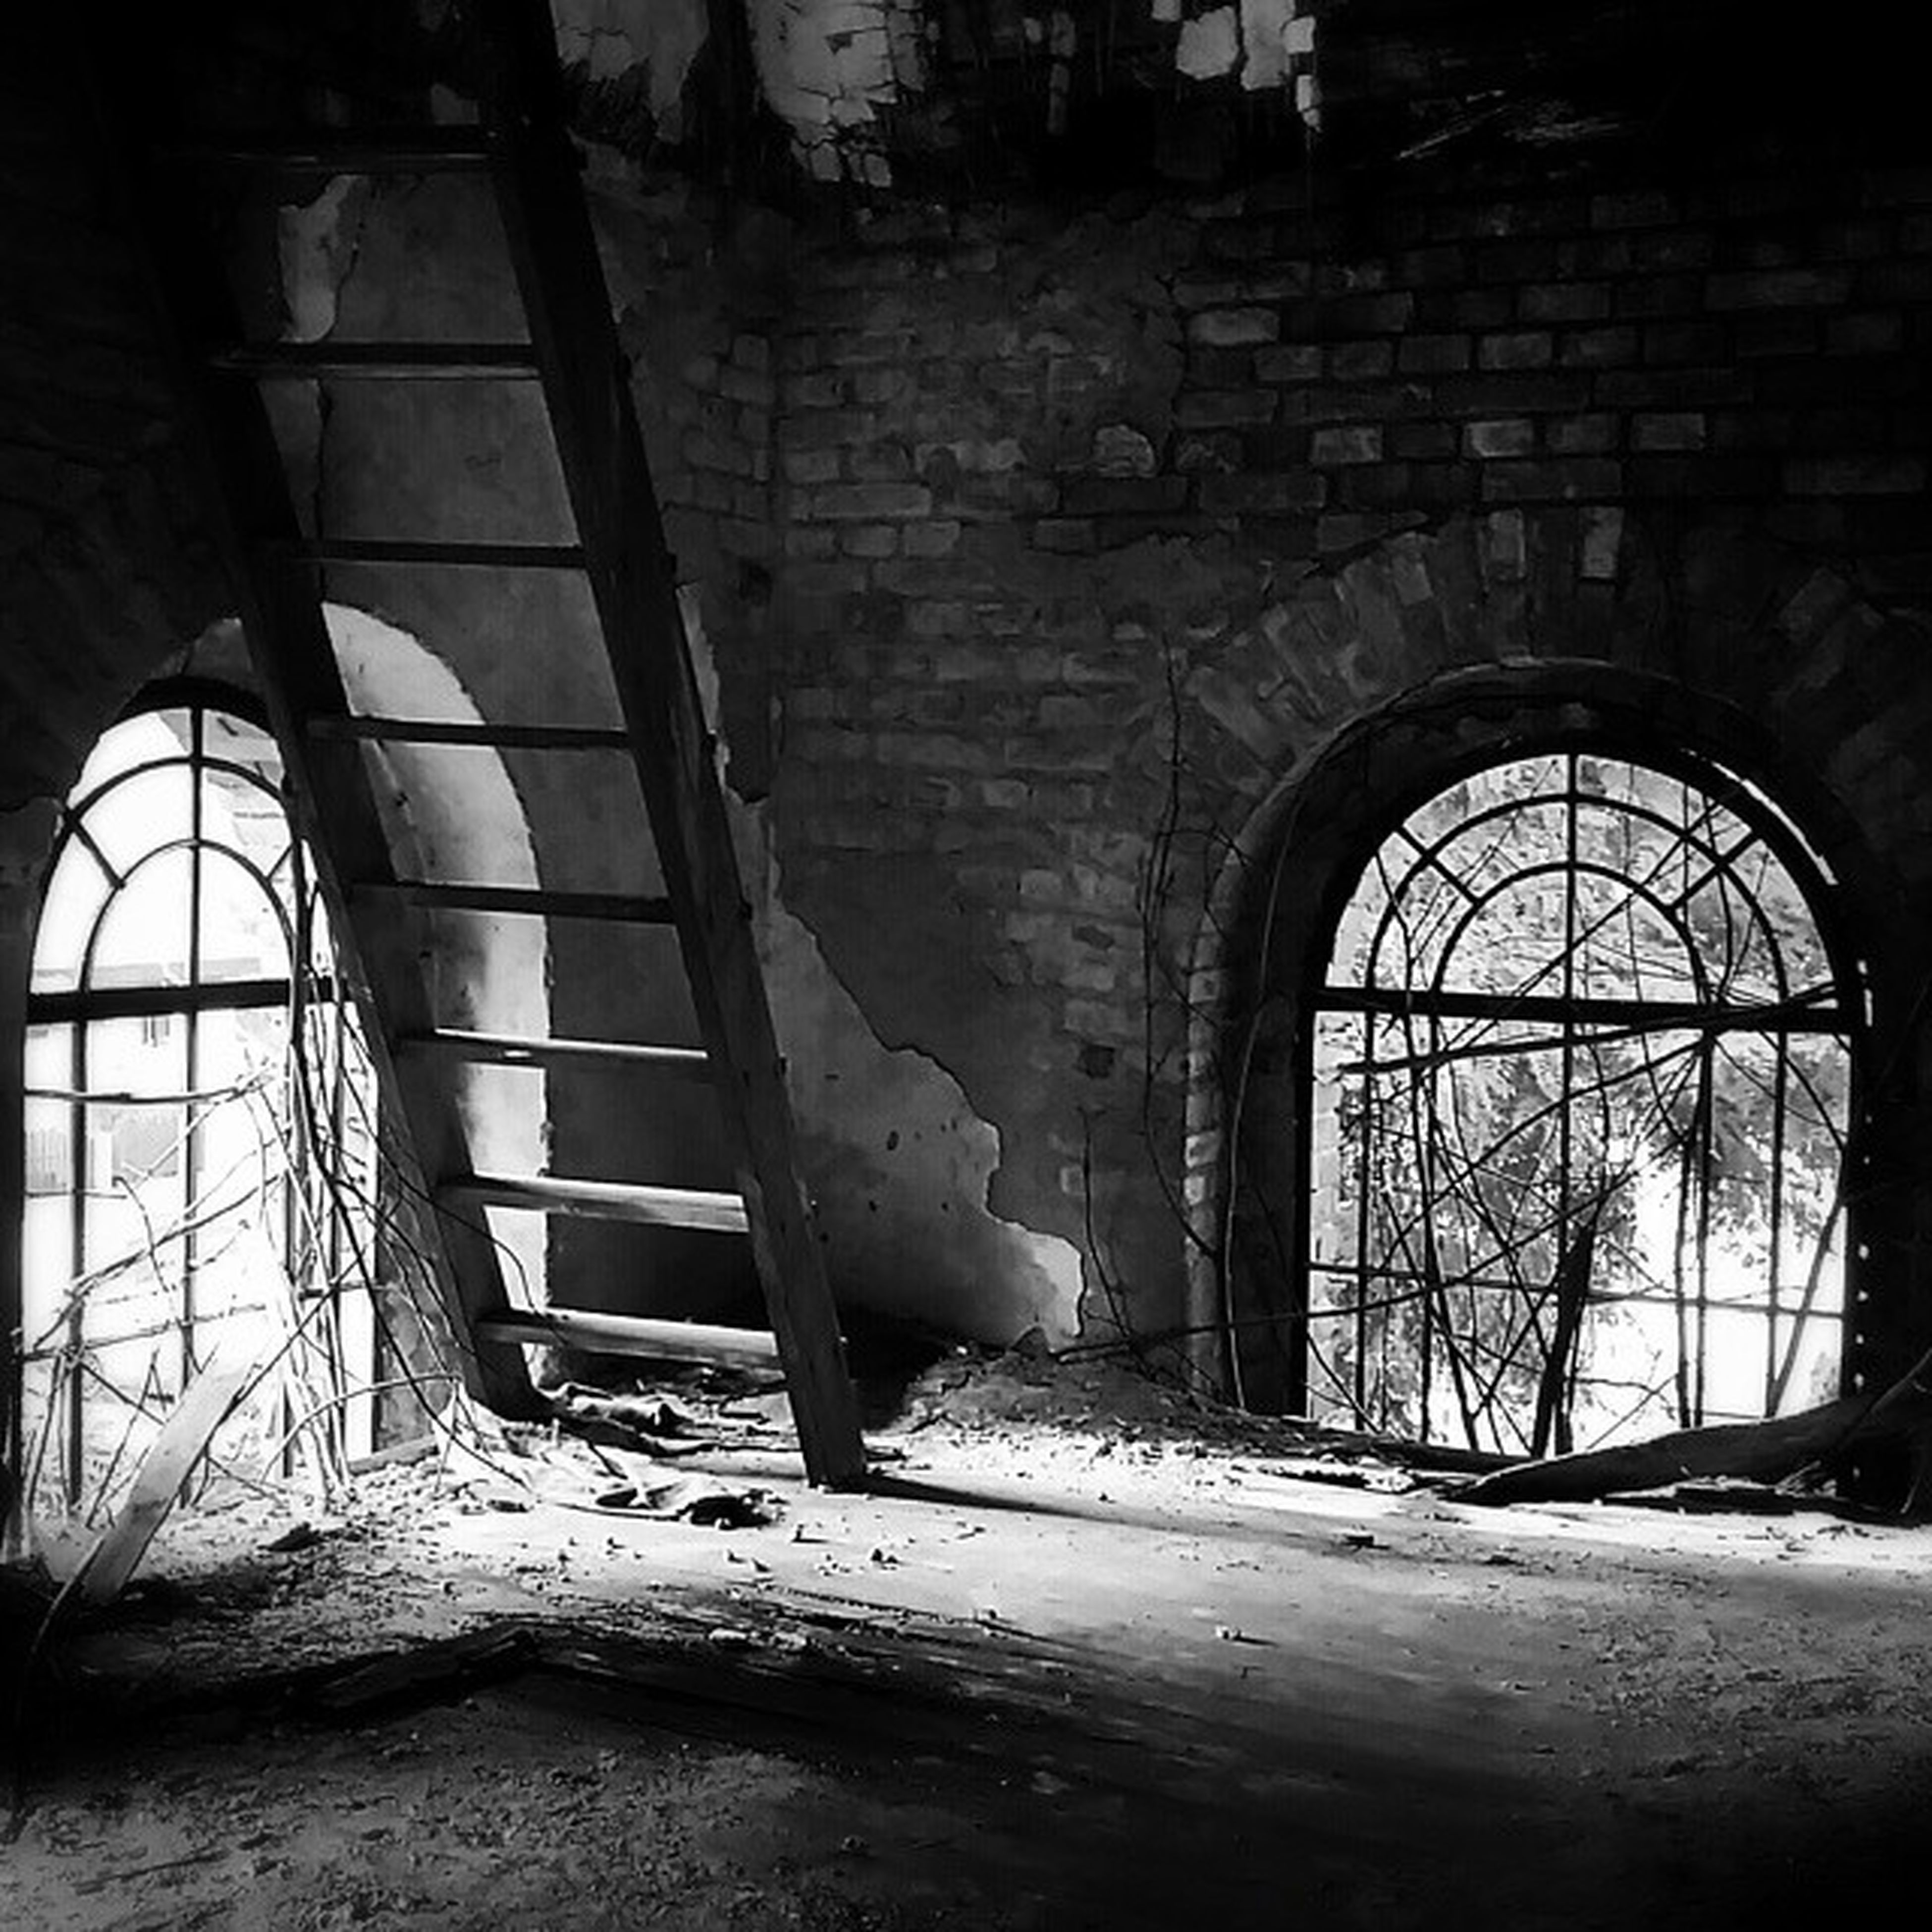 indoors, abandoned, obsolete, built structure, old, damaged, architecture, run-down, deterioration, wall - building feature, window, interior, weathered, bad condition, arch, wall, absence, broken, chair, ruined